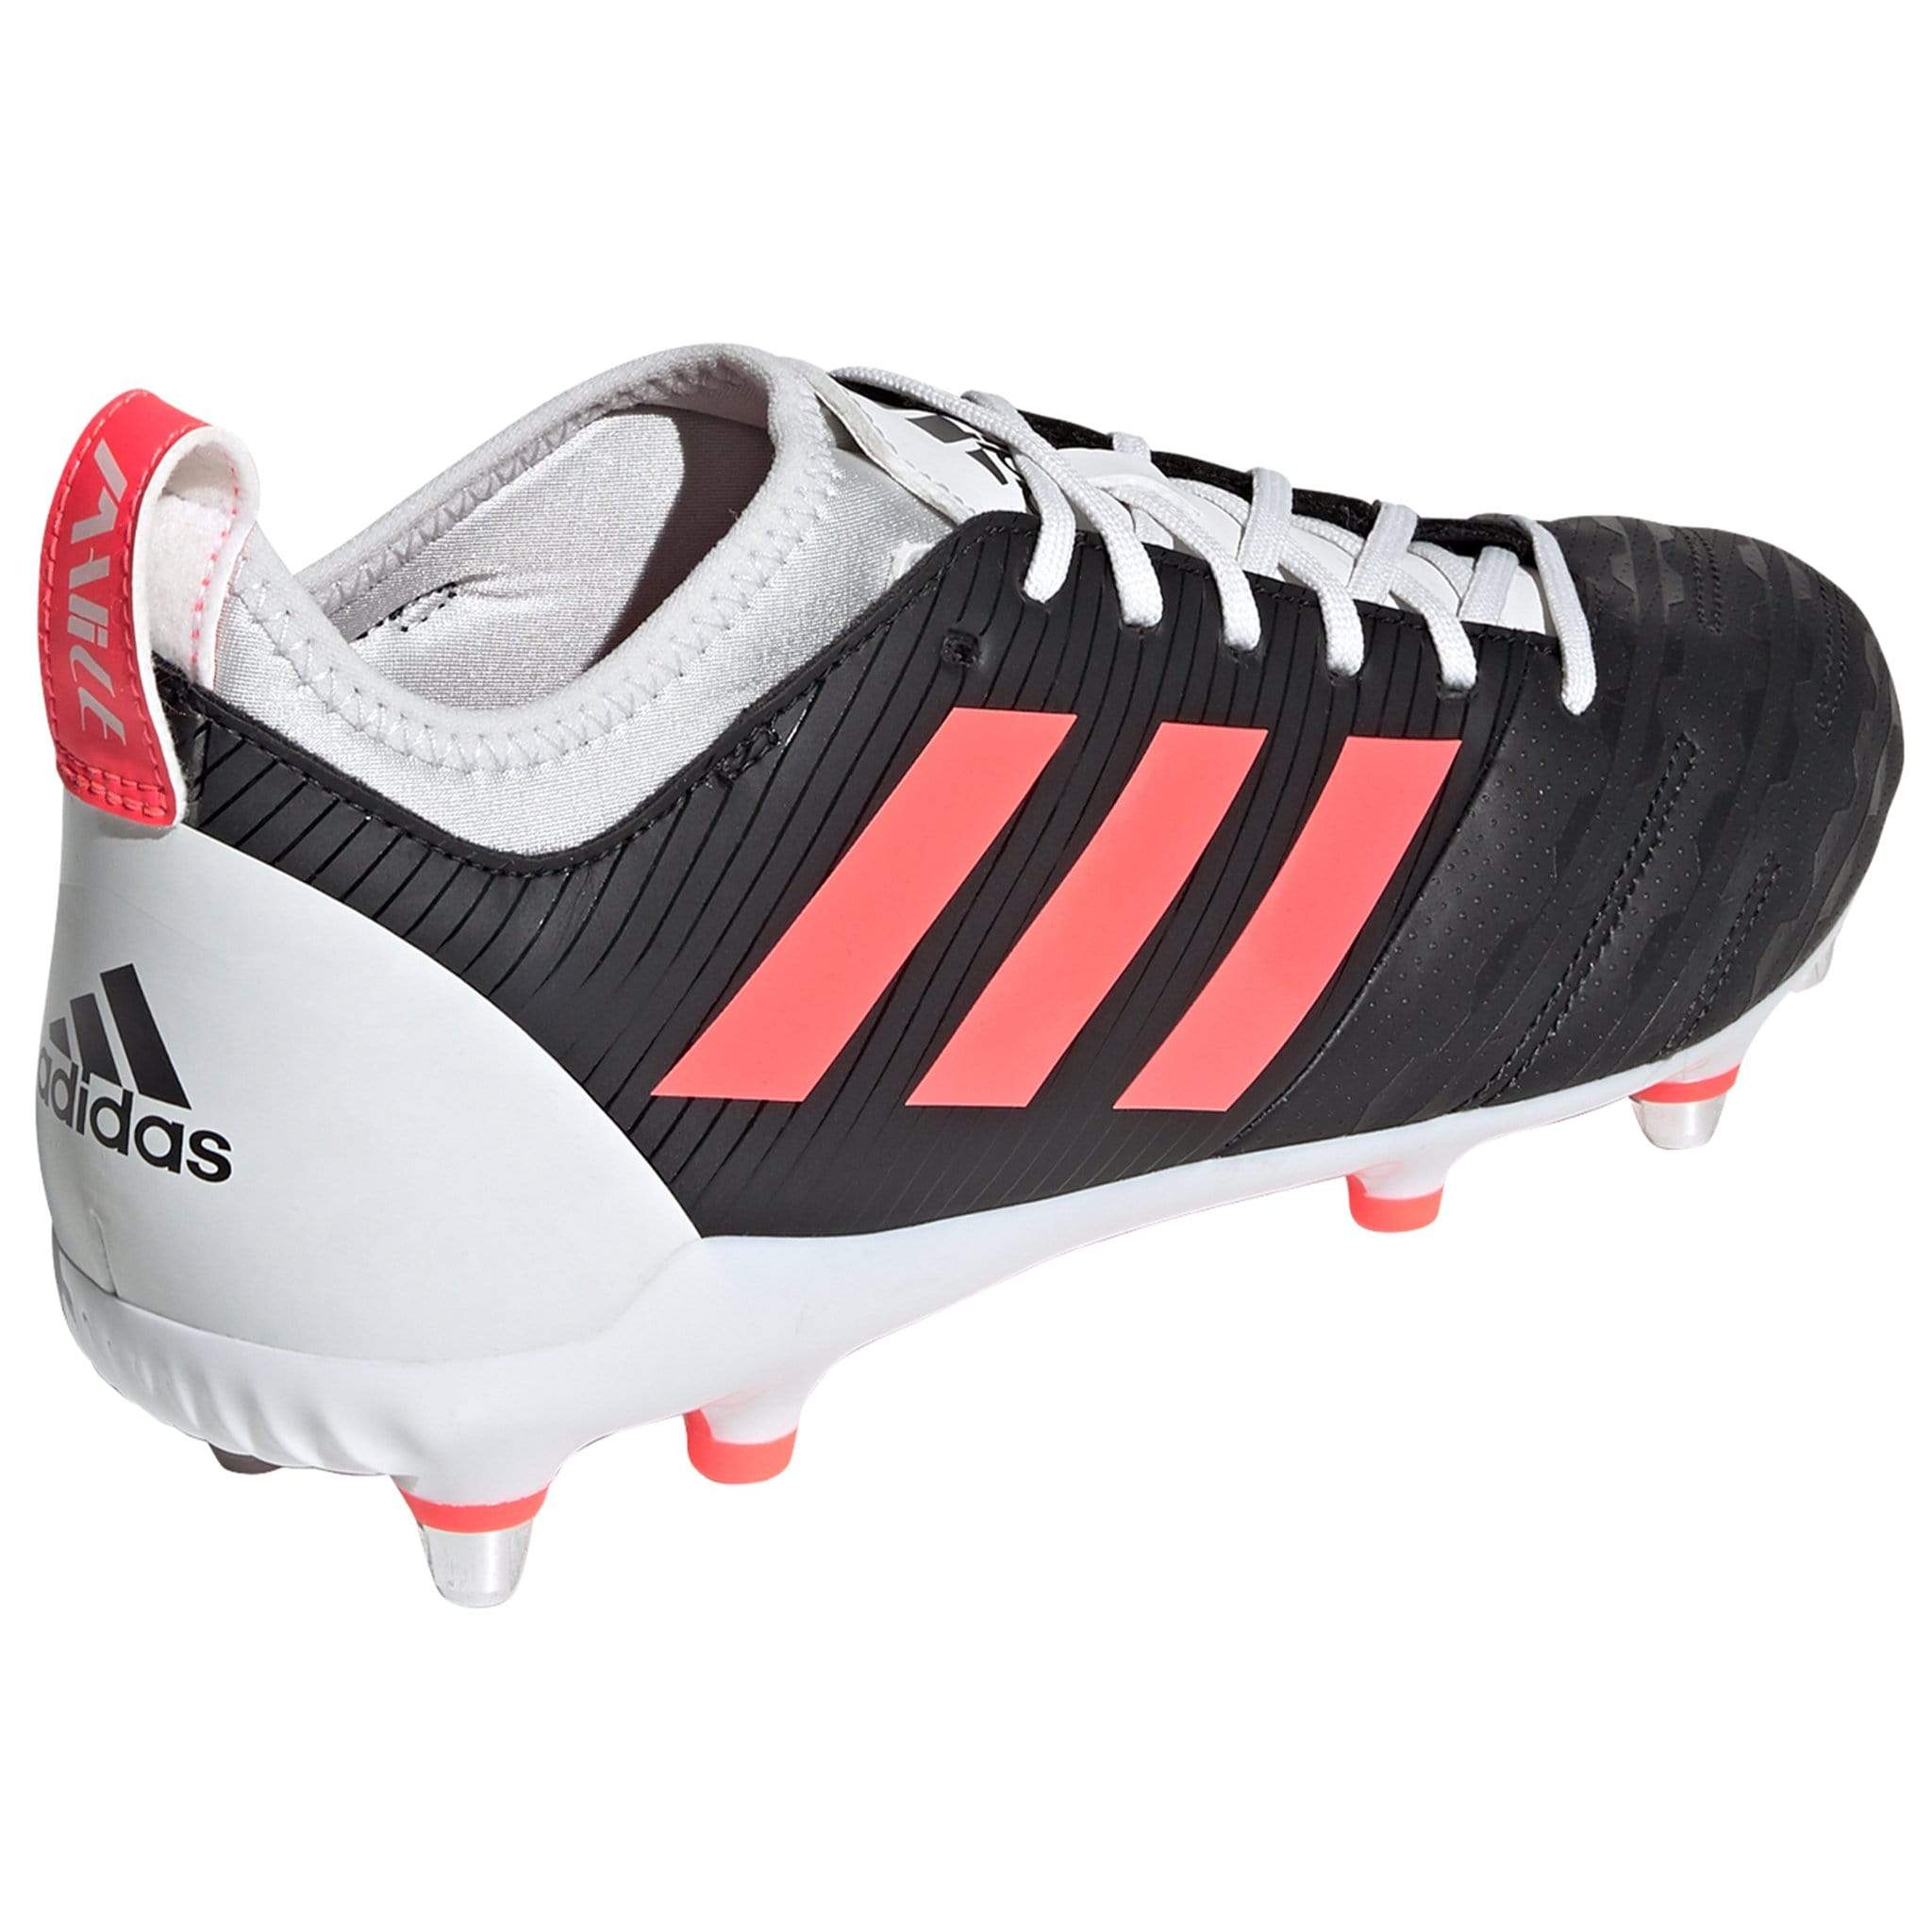 Back of Rugby Boot is White With Black Adidas Logo